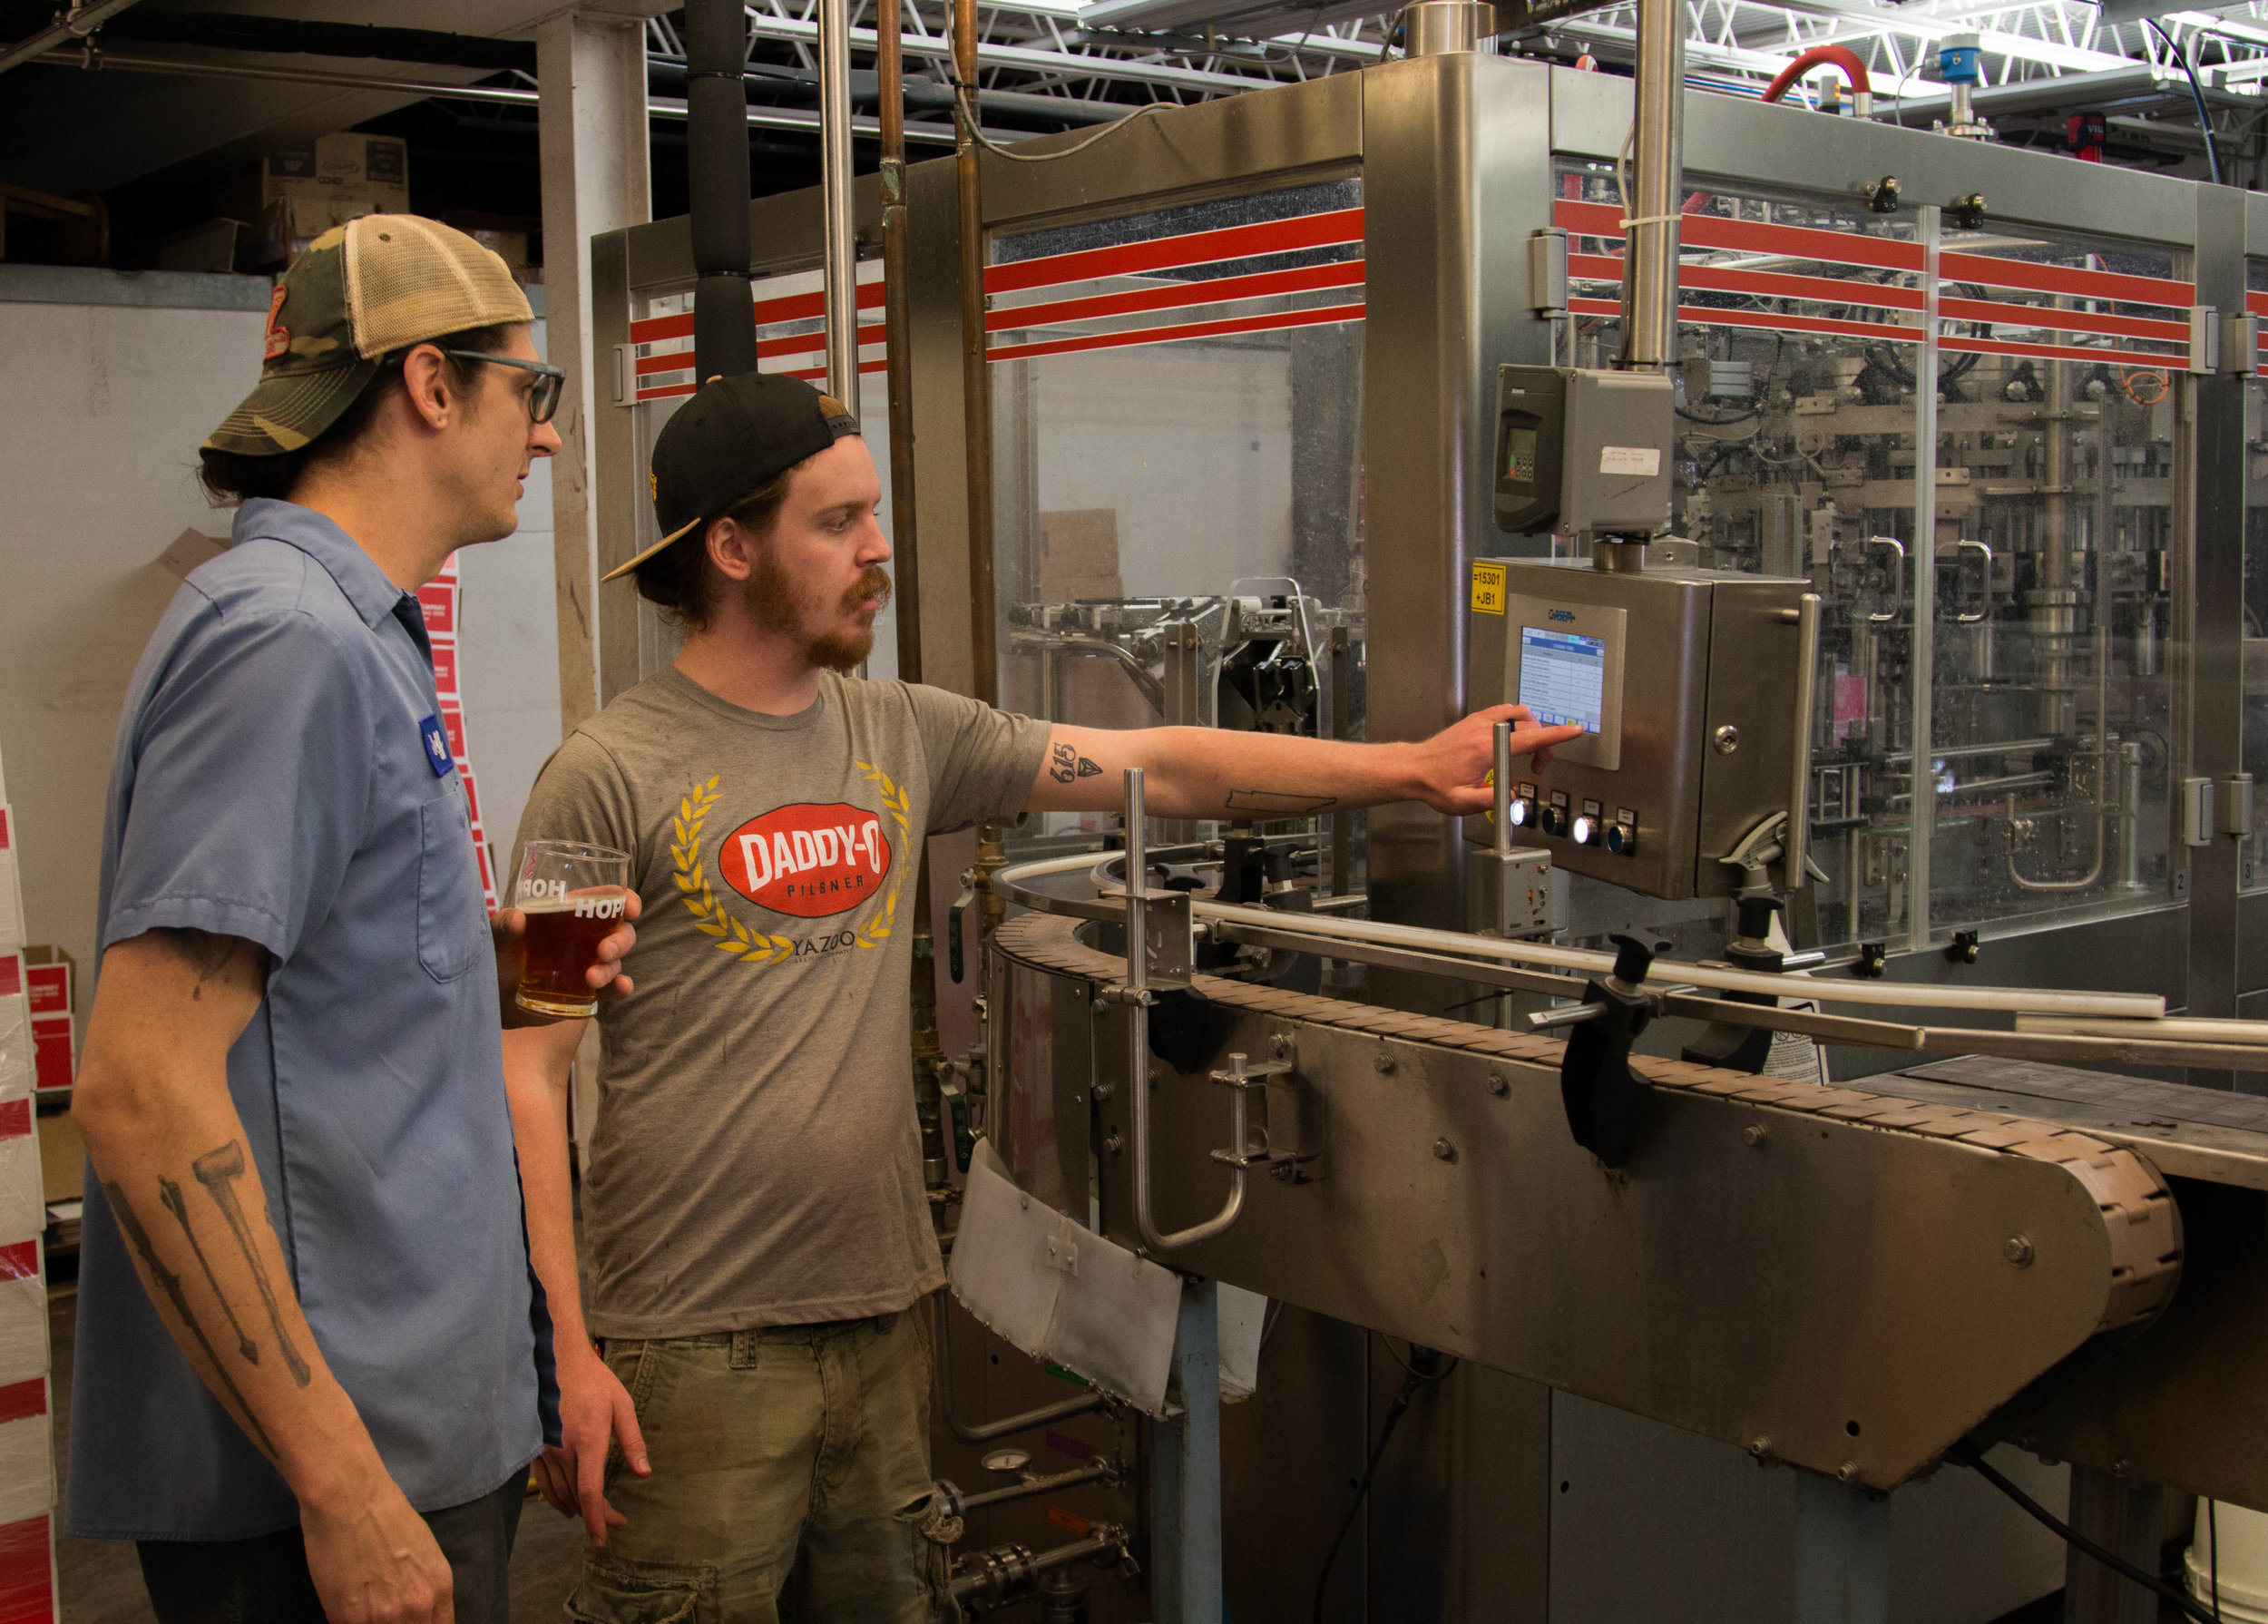 Head Brewer Jeff Burnett (left) advises the next move on the bottling line.